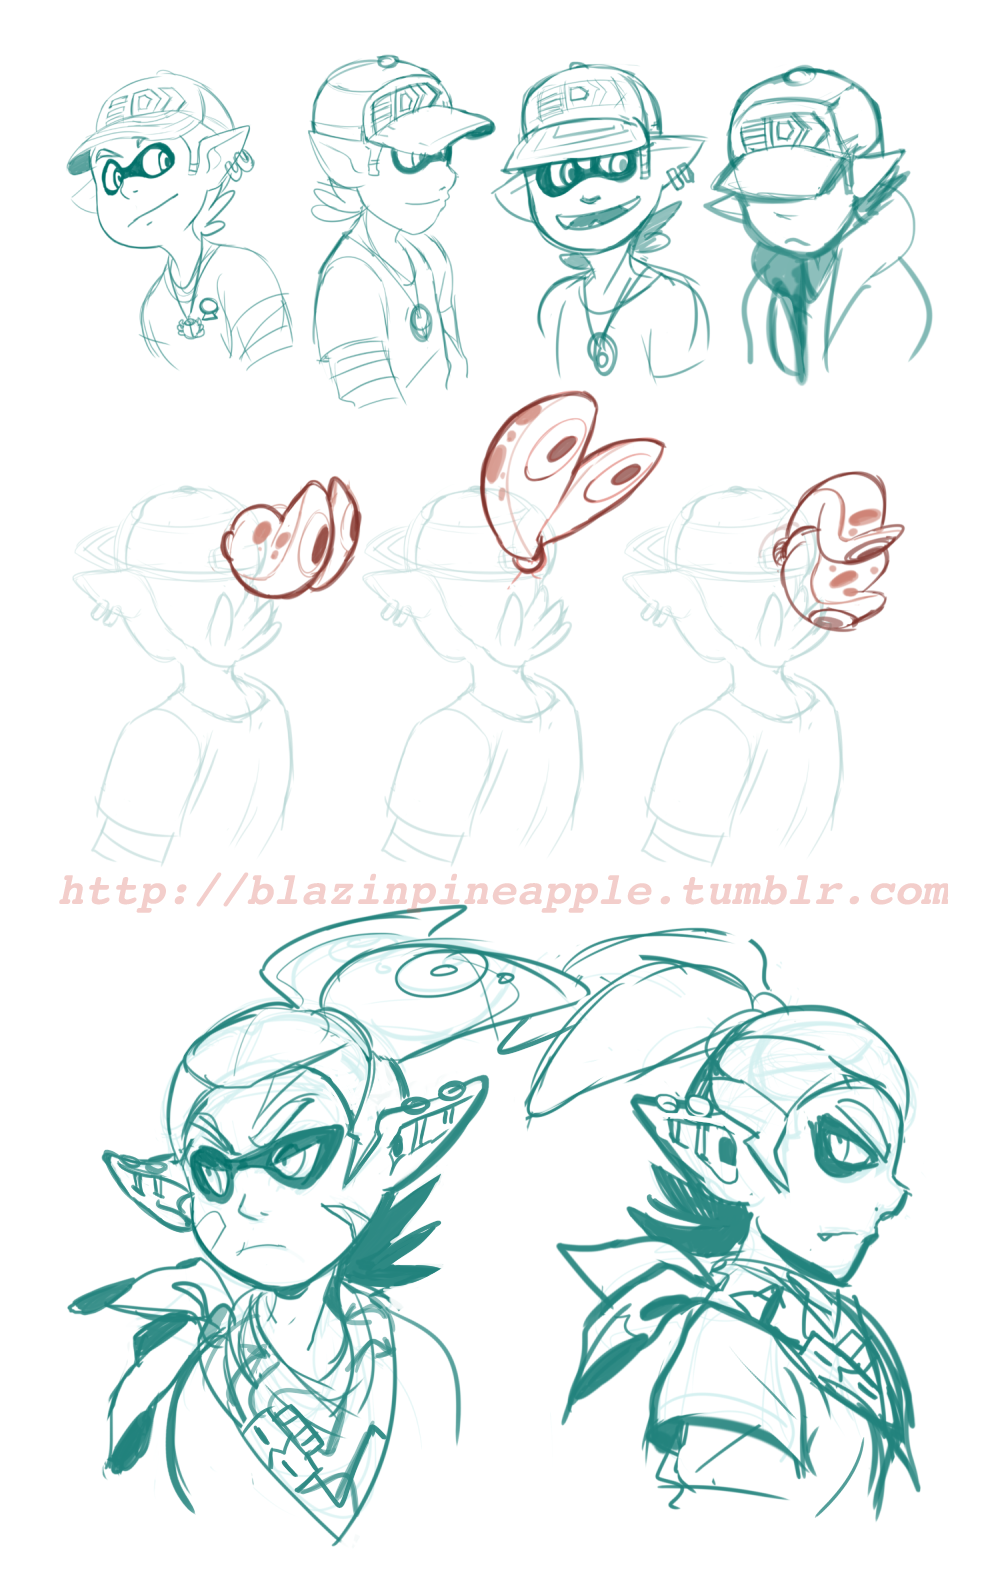 Splatoon stuff for today. Have to wake up early to help cook for Thankscraving Day. Still indecisive about wether to have Camino's tentacles pop out of his hat or not, but it seems to make more...